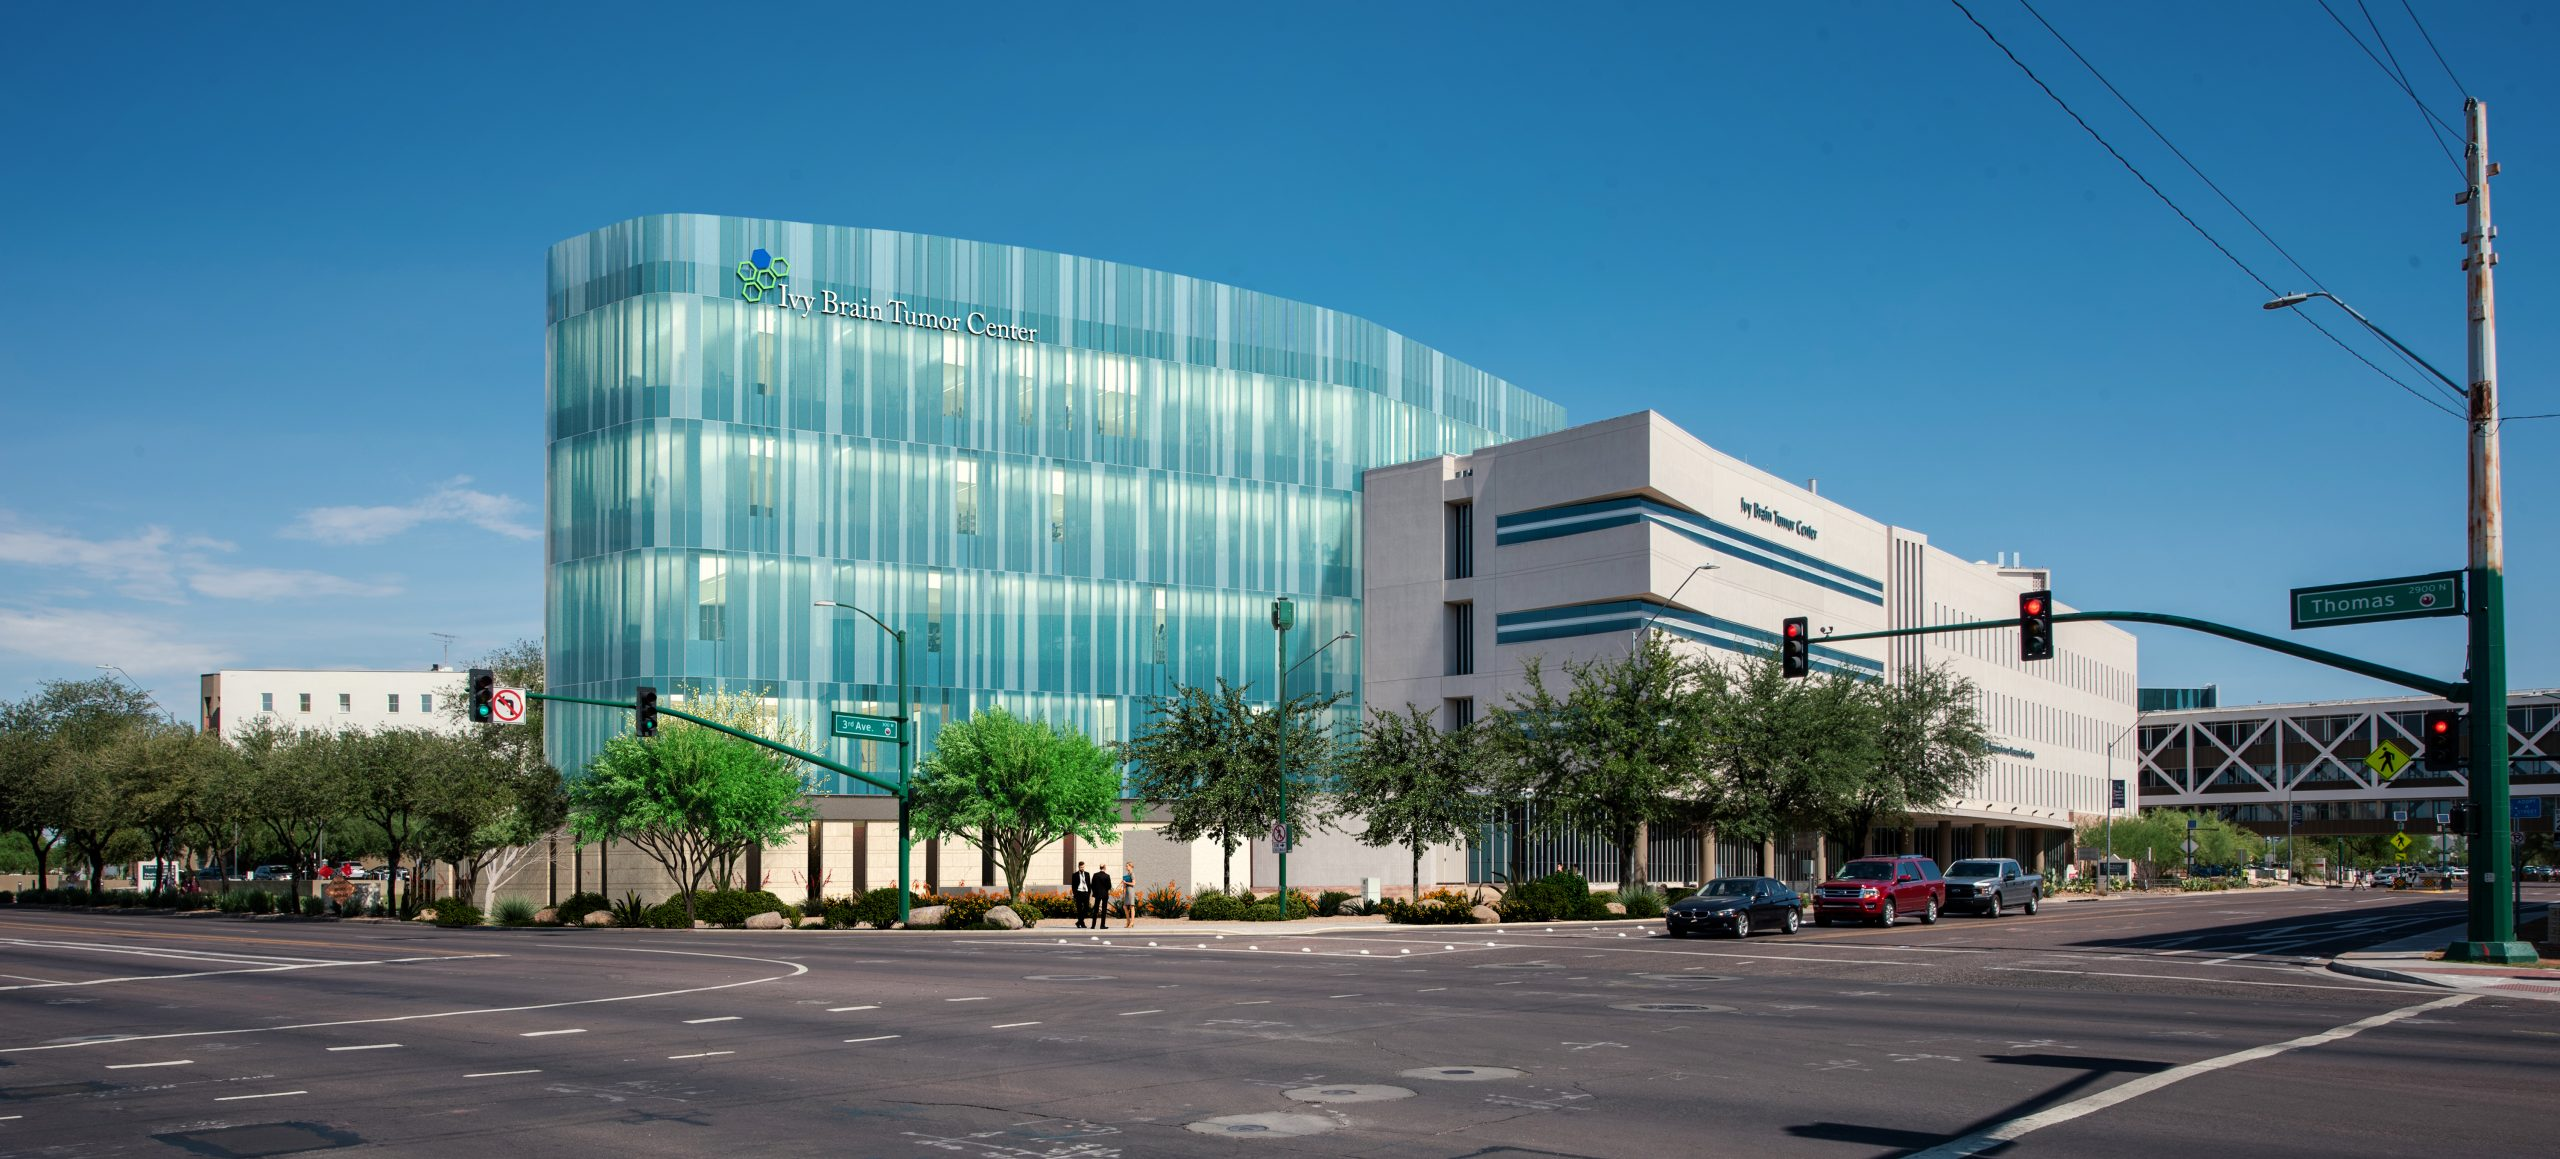 A rendering of the Ivy Brain Tumor Center's new global headquarters. The five-story building will be the largest translational research center dedicated to brain tumor drug development in the world. Construction is expected to be completed in early 2023. It will be located on the Dignity Health St. Joseph's Hospital and Medical Center campus in Phoenix, AZ. Photo Credit: Devenney Group, Ltd. Architects